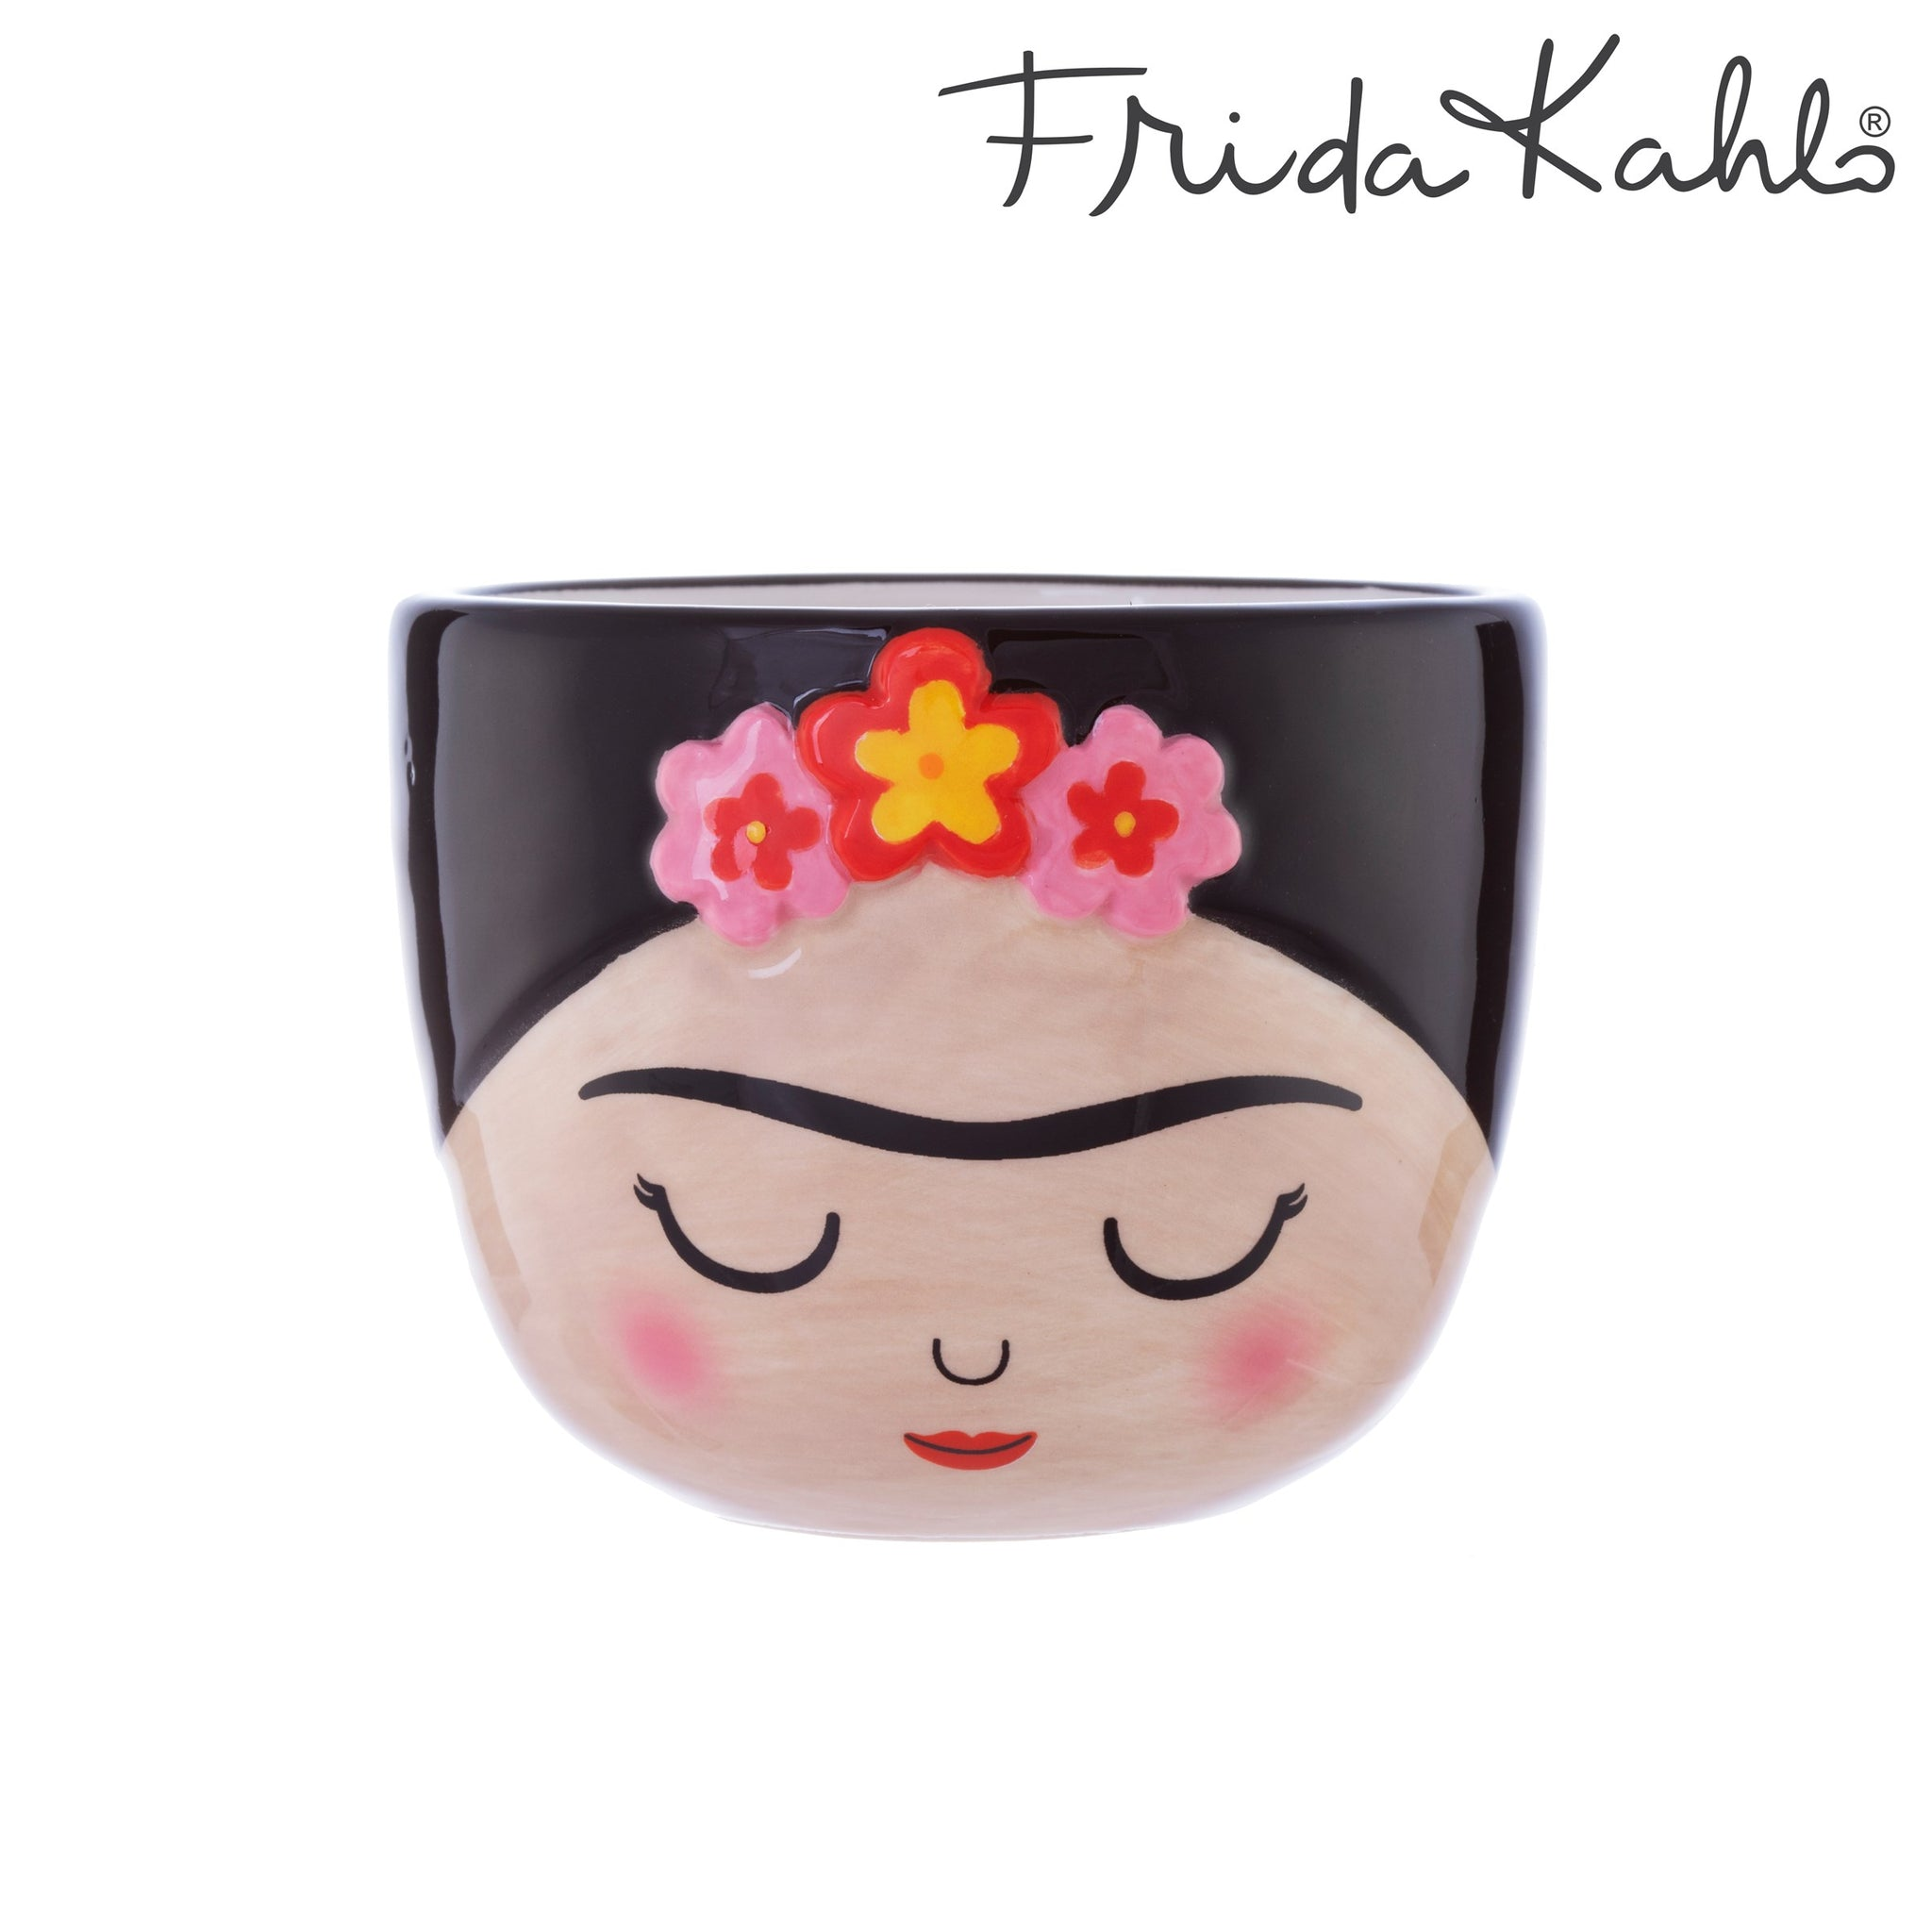 Maceta mini Frida